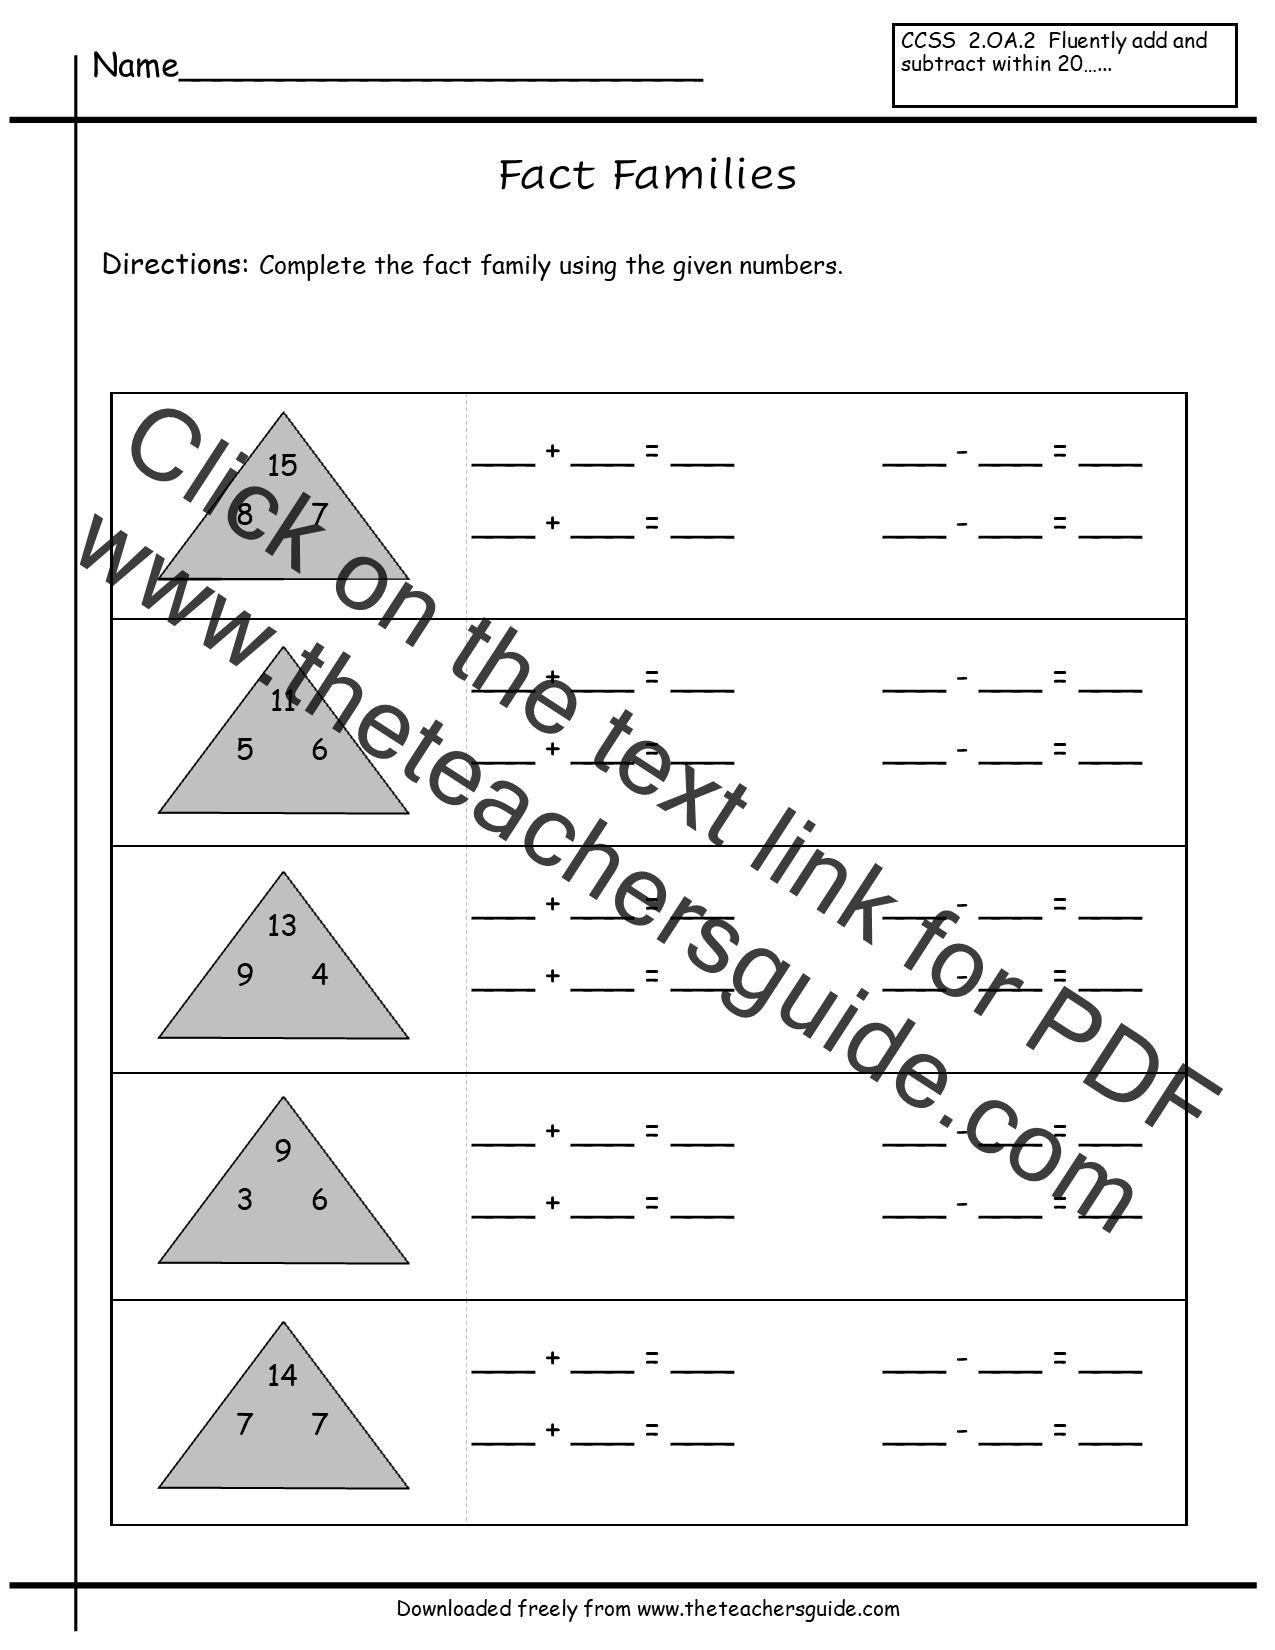 Worksheets Math Fact Families Worksheets comparing numbers worksheets from the teachers guide fact family worksheets